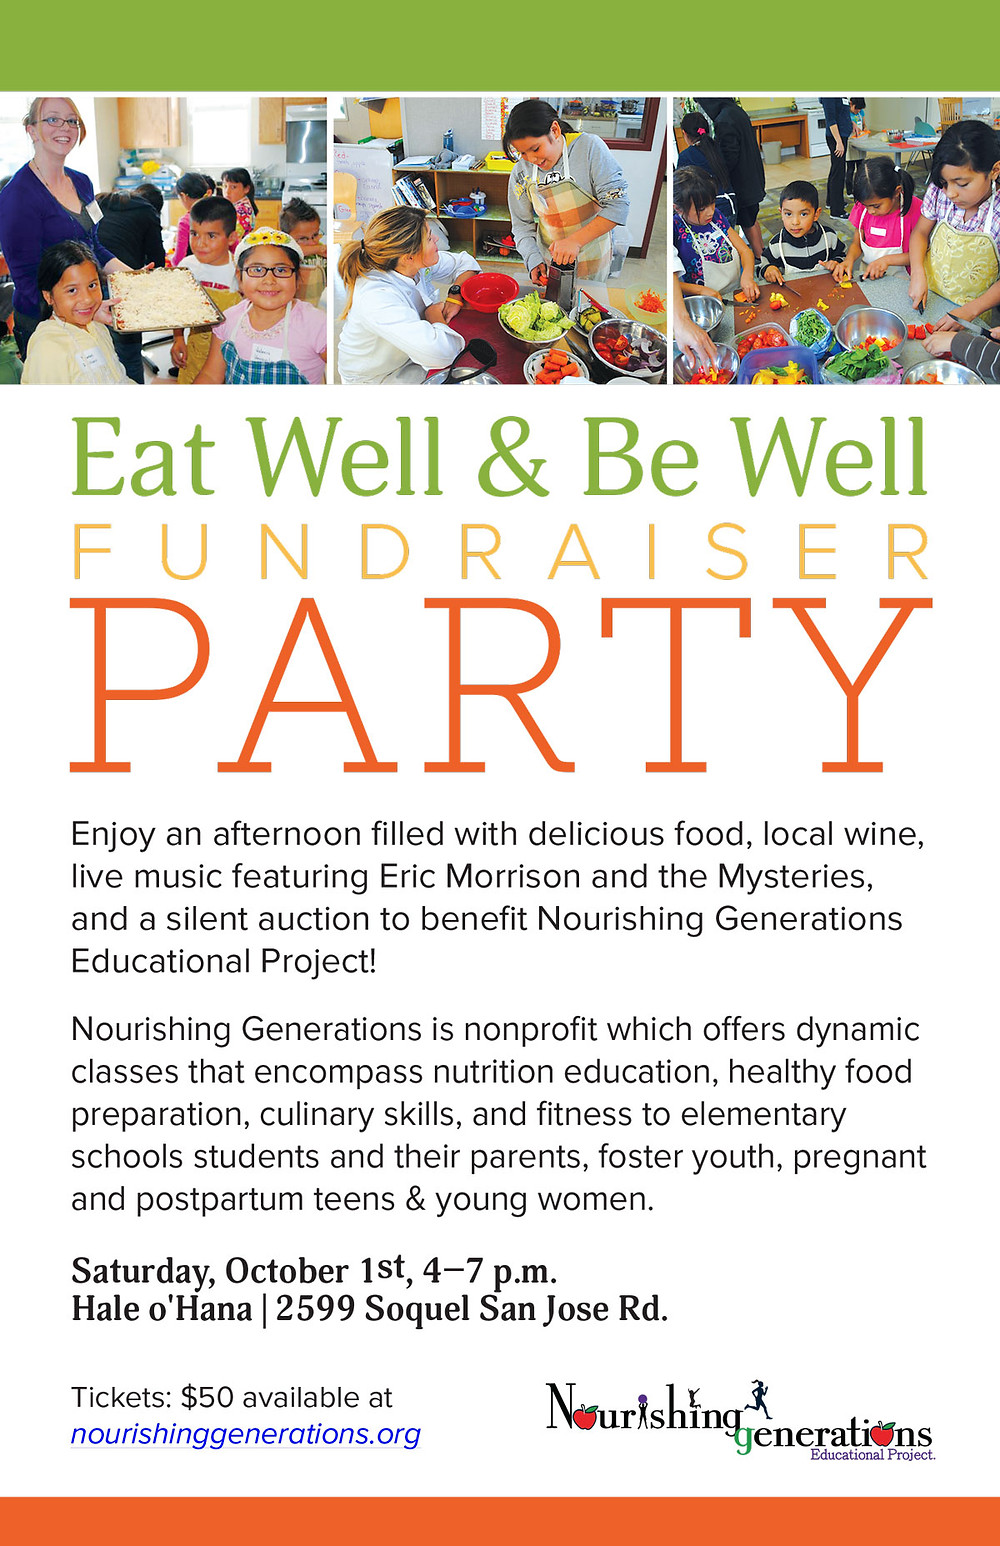 Eat Well & Be Well Fundraiser Party Flyer